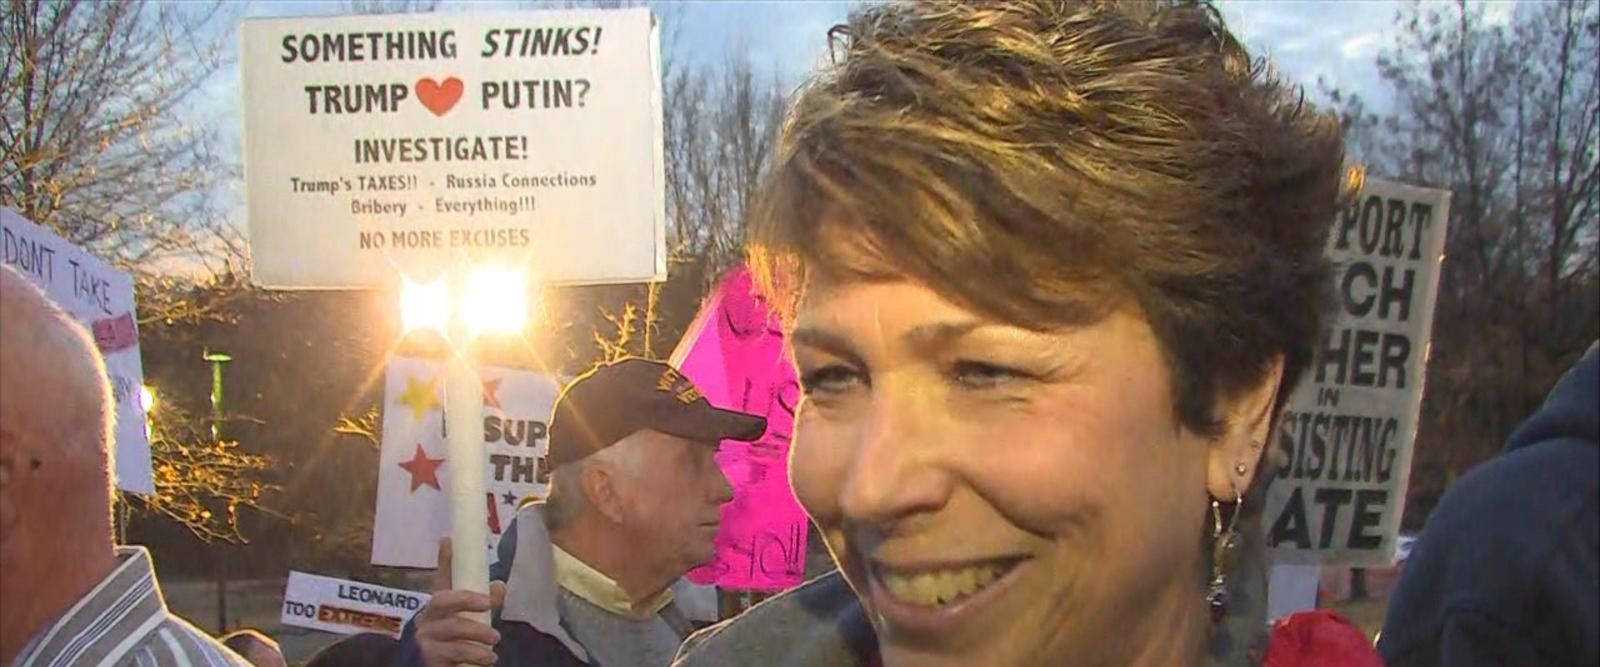 VIDEO: Protesters and supporters gather ahead of Rep. Leonard Lance's town hall